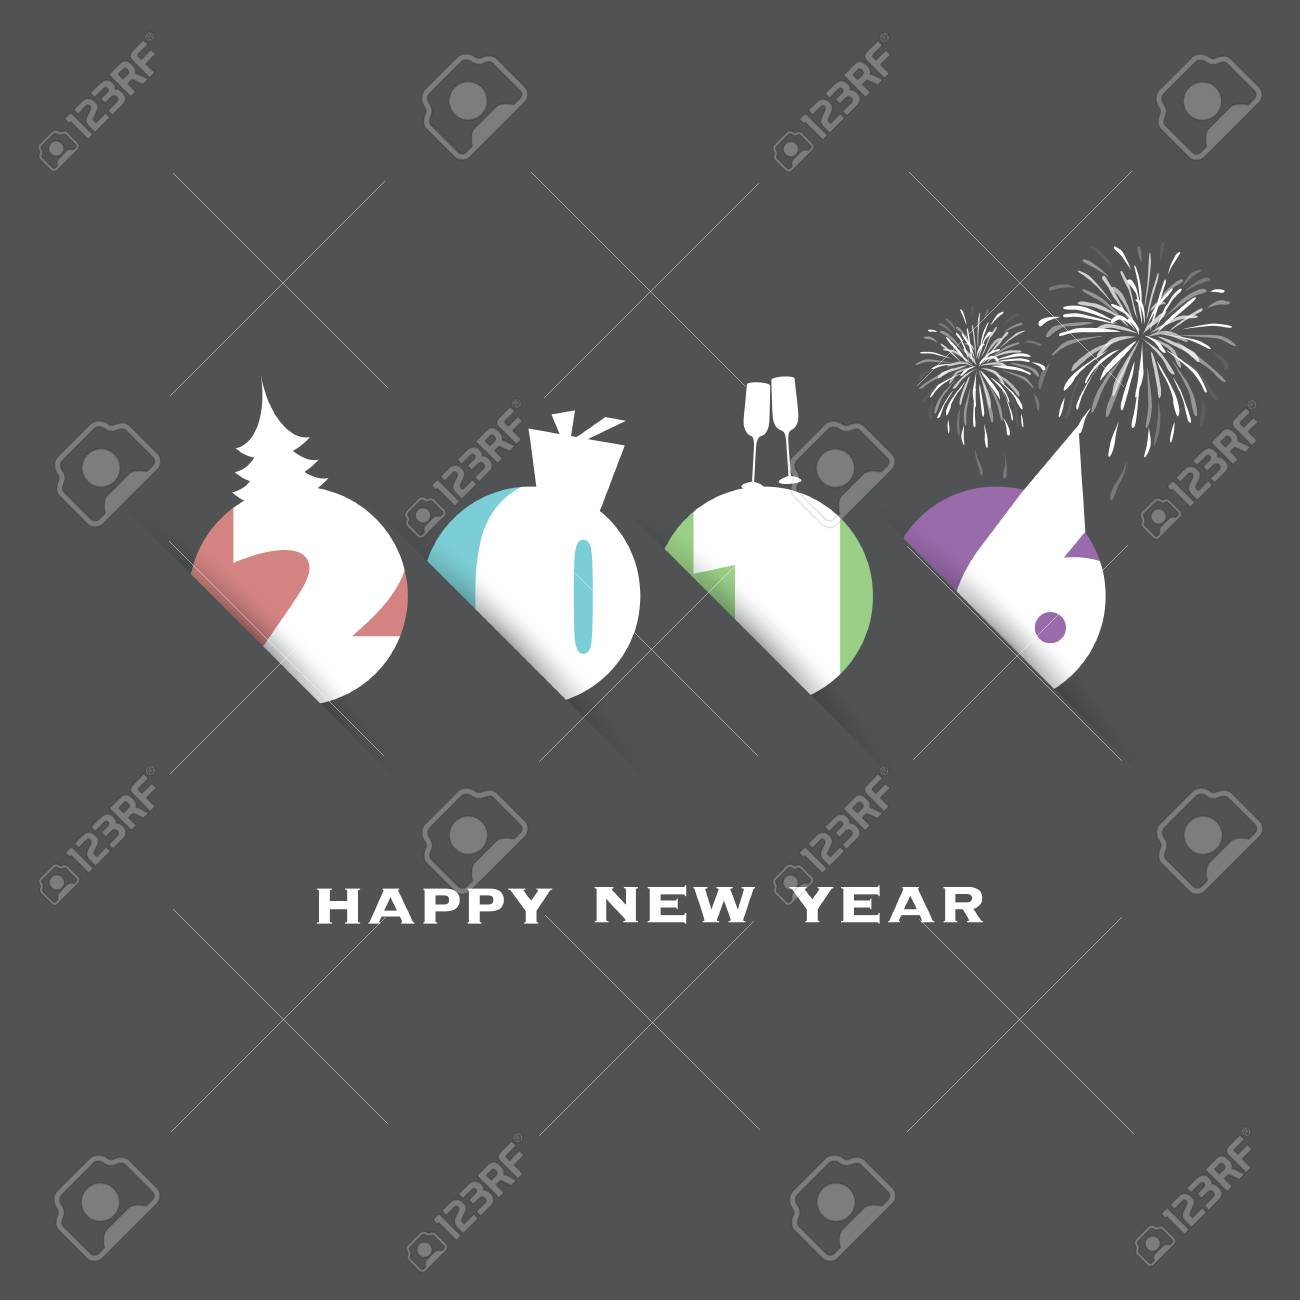 simple new year card cover or background design template with holiday icons 2016 stock